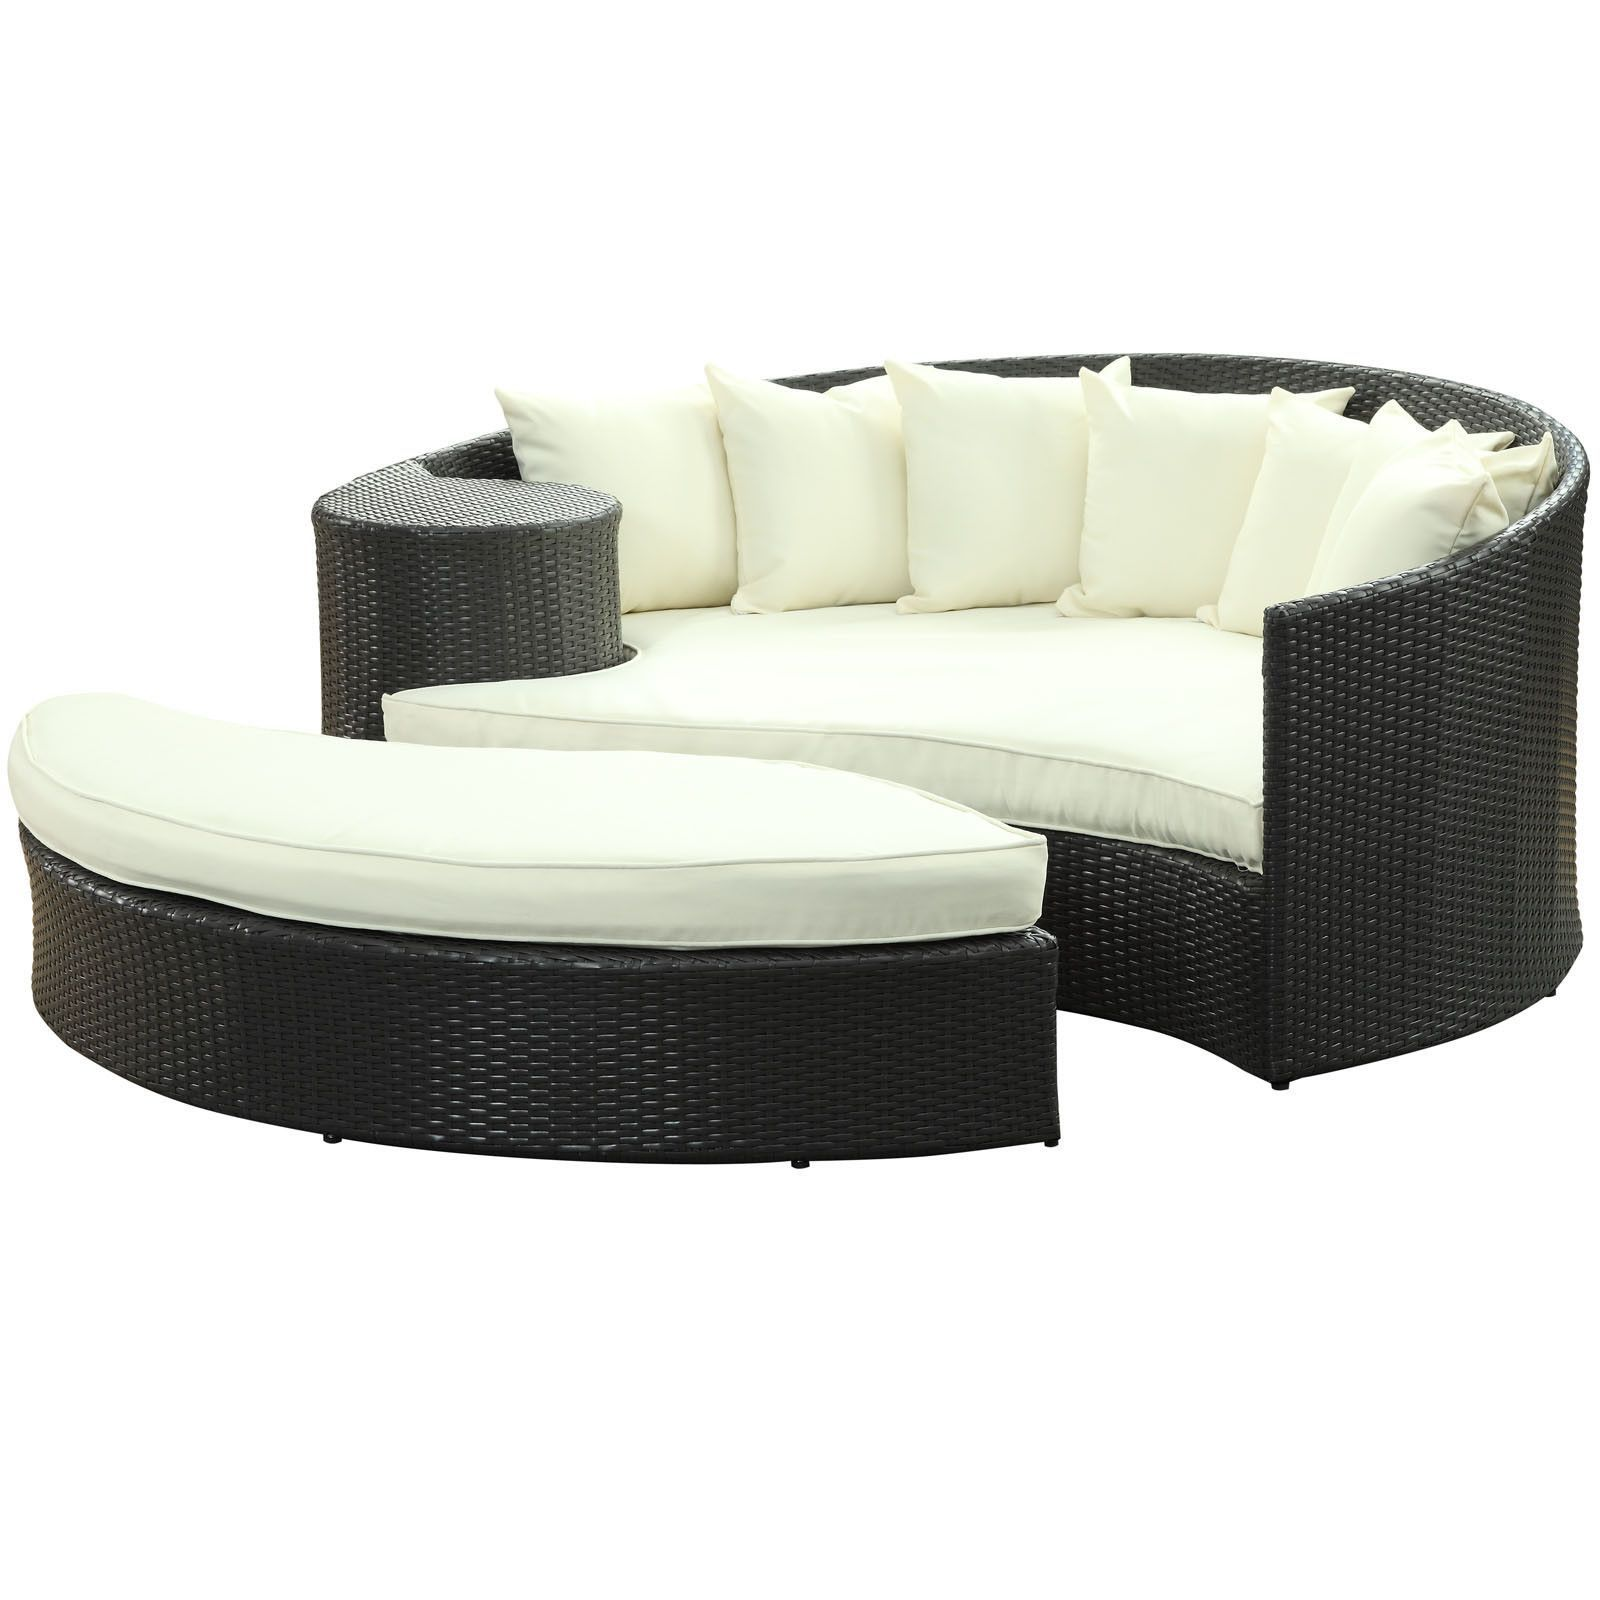 """Overall Product Dimensions 71""""L x 79""""W x 29""""H Daybed Dimensions"""